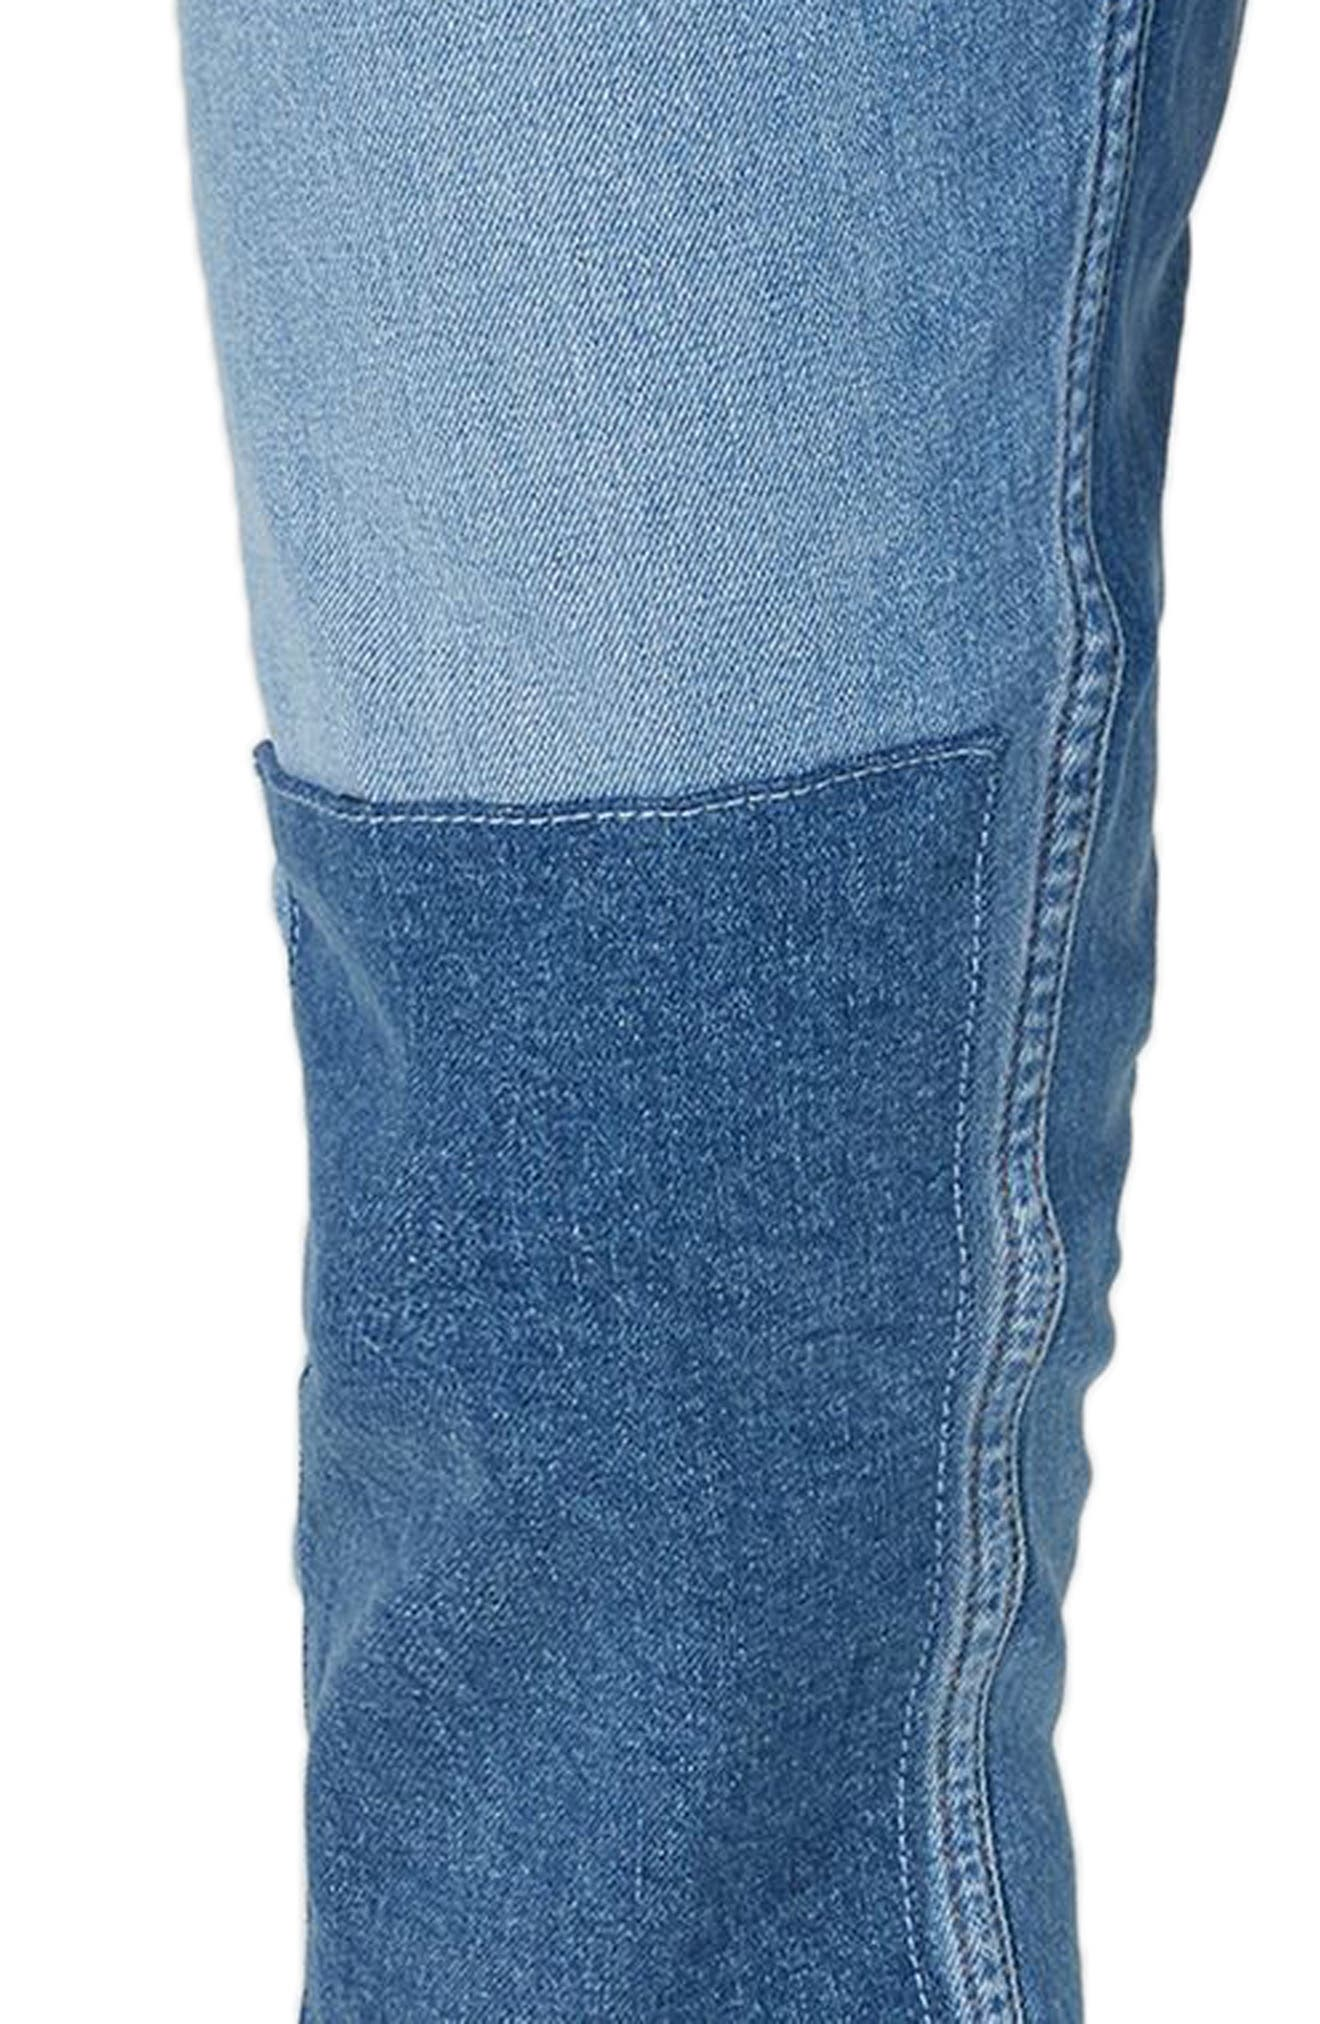 Patch Stretch Skinny Jeans,                             Alternate thumbnail 3, color,                             400